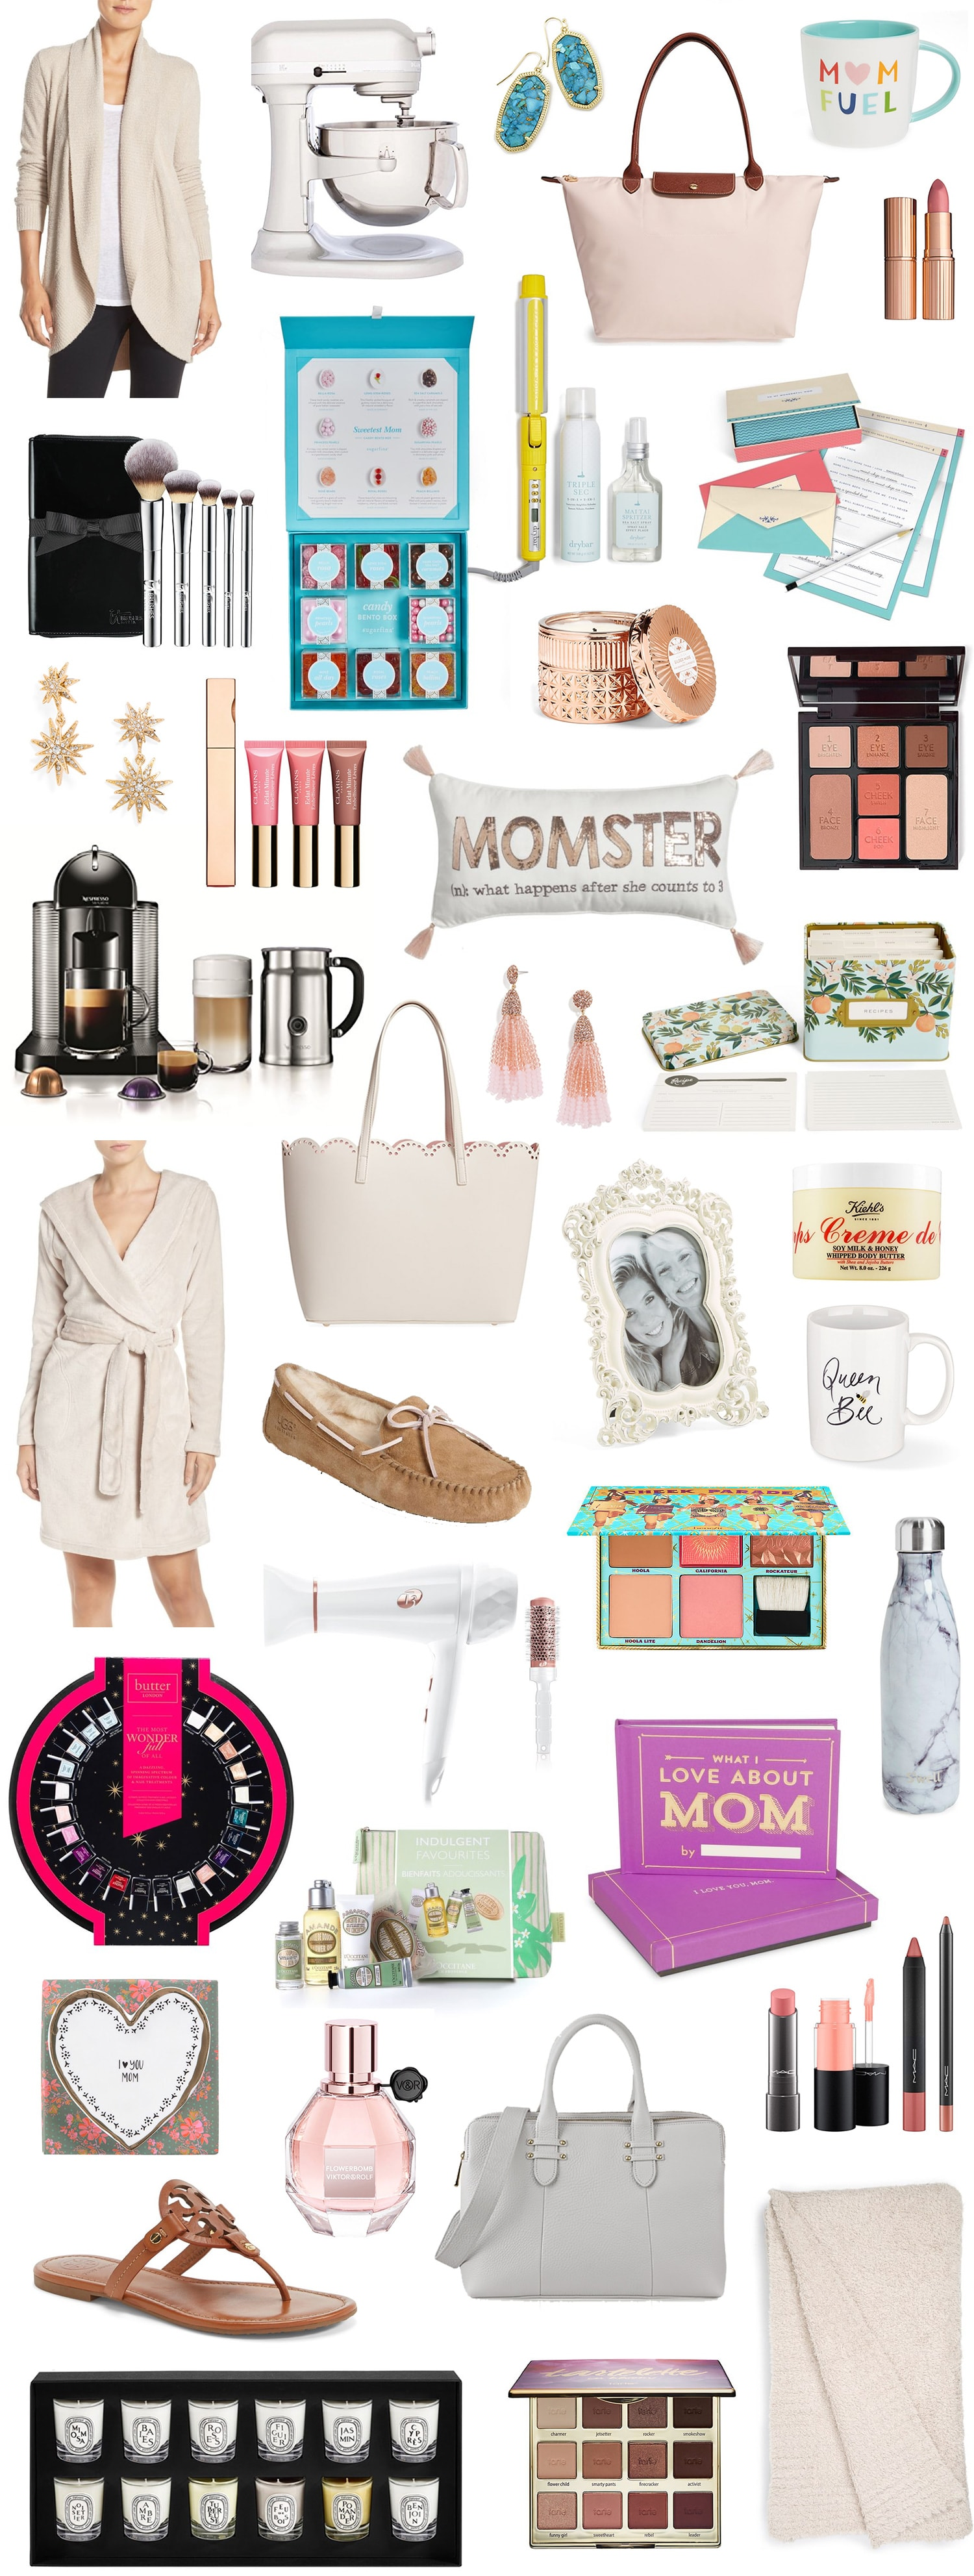 The best Mother's Day gift ideas under $100 |Cute gift ideas for women | Ashley Brooke Nicholas